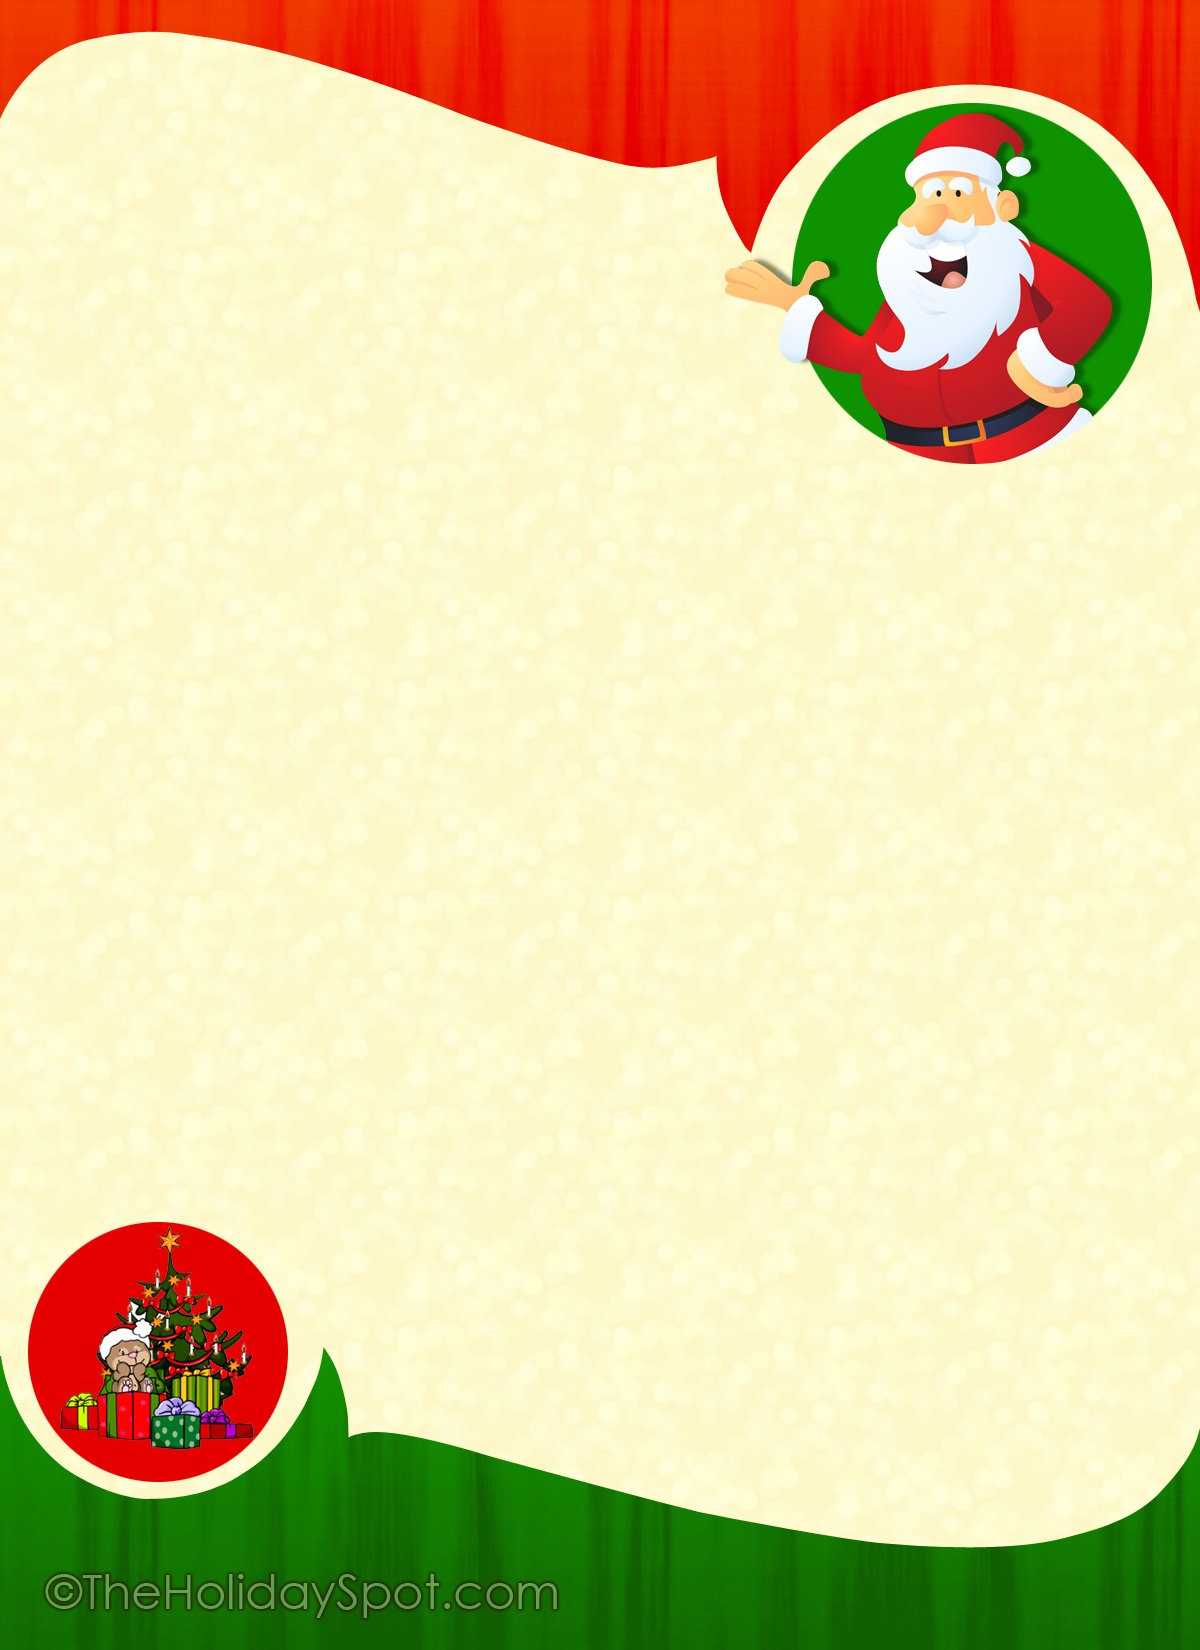 Free Christmas Letterhead | Free Stationery For Christmas - Free Printable Christmas Stationery For Kids